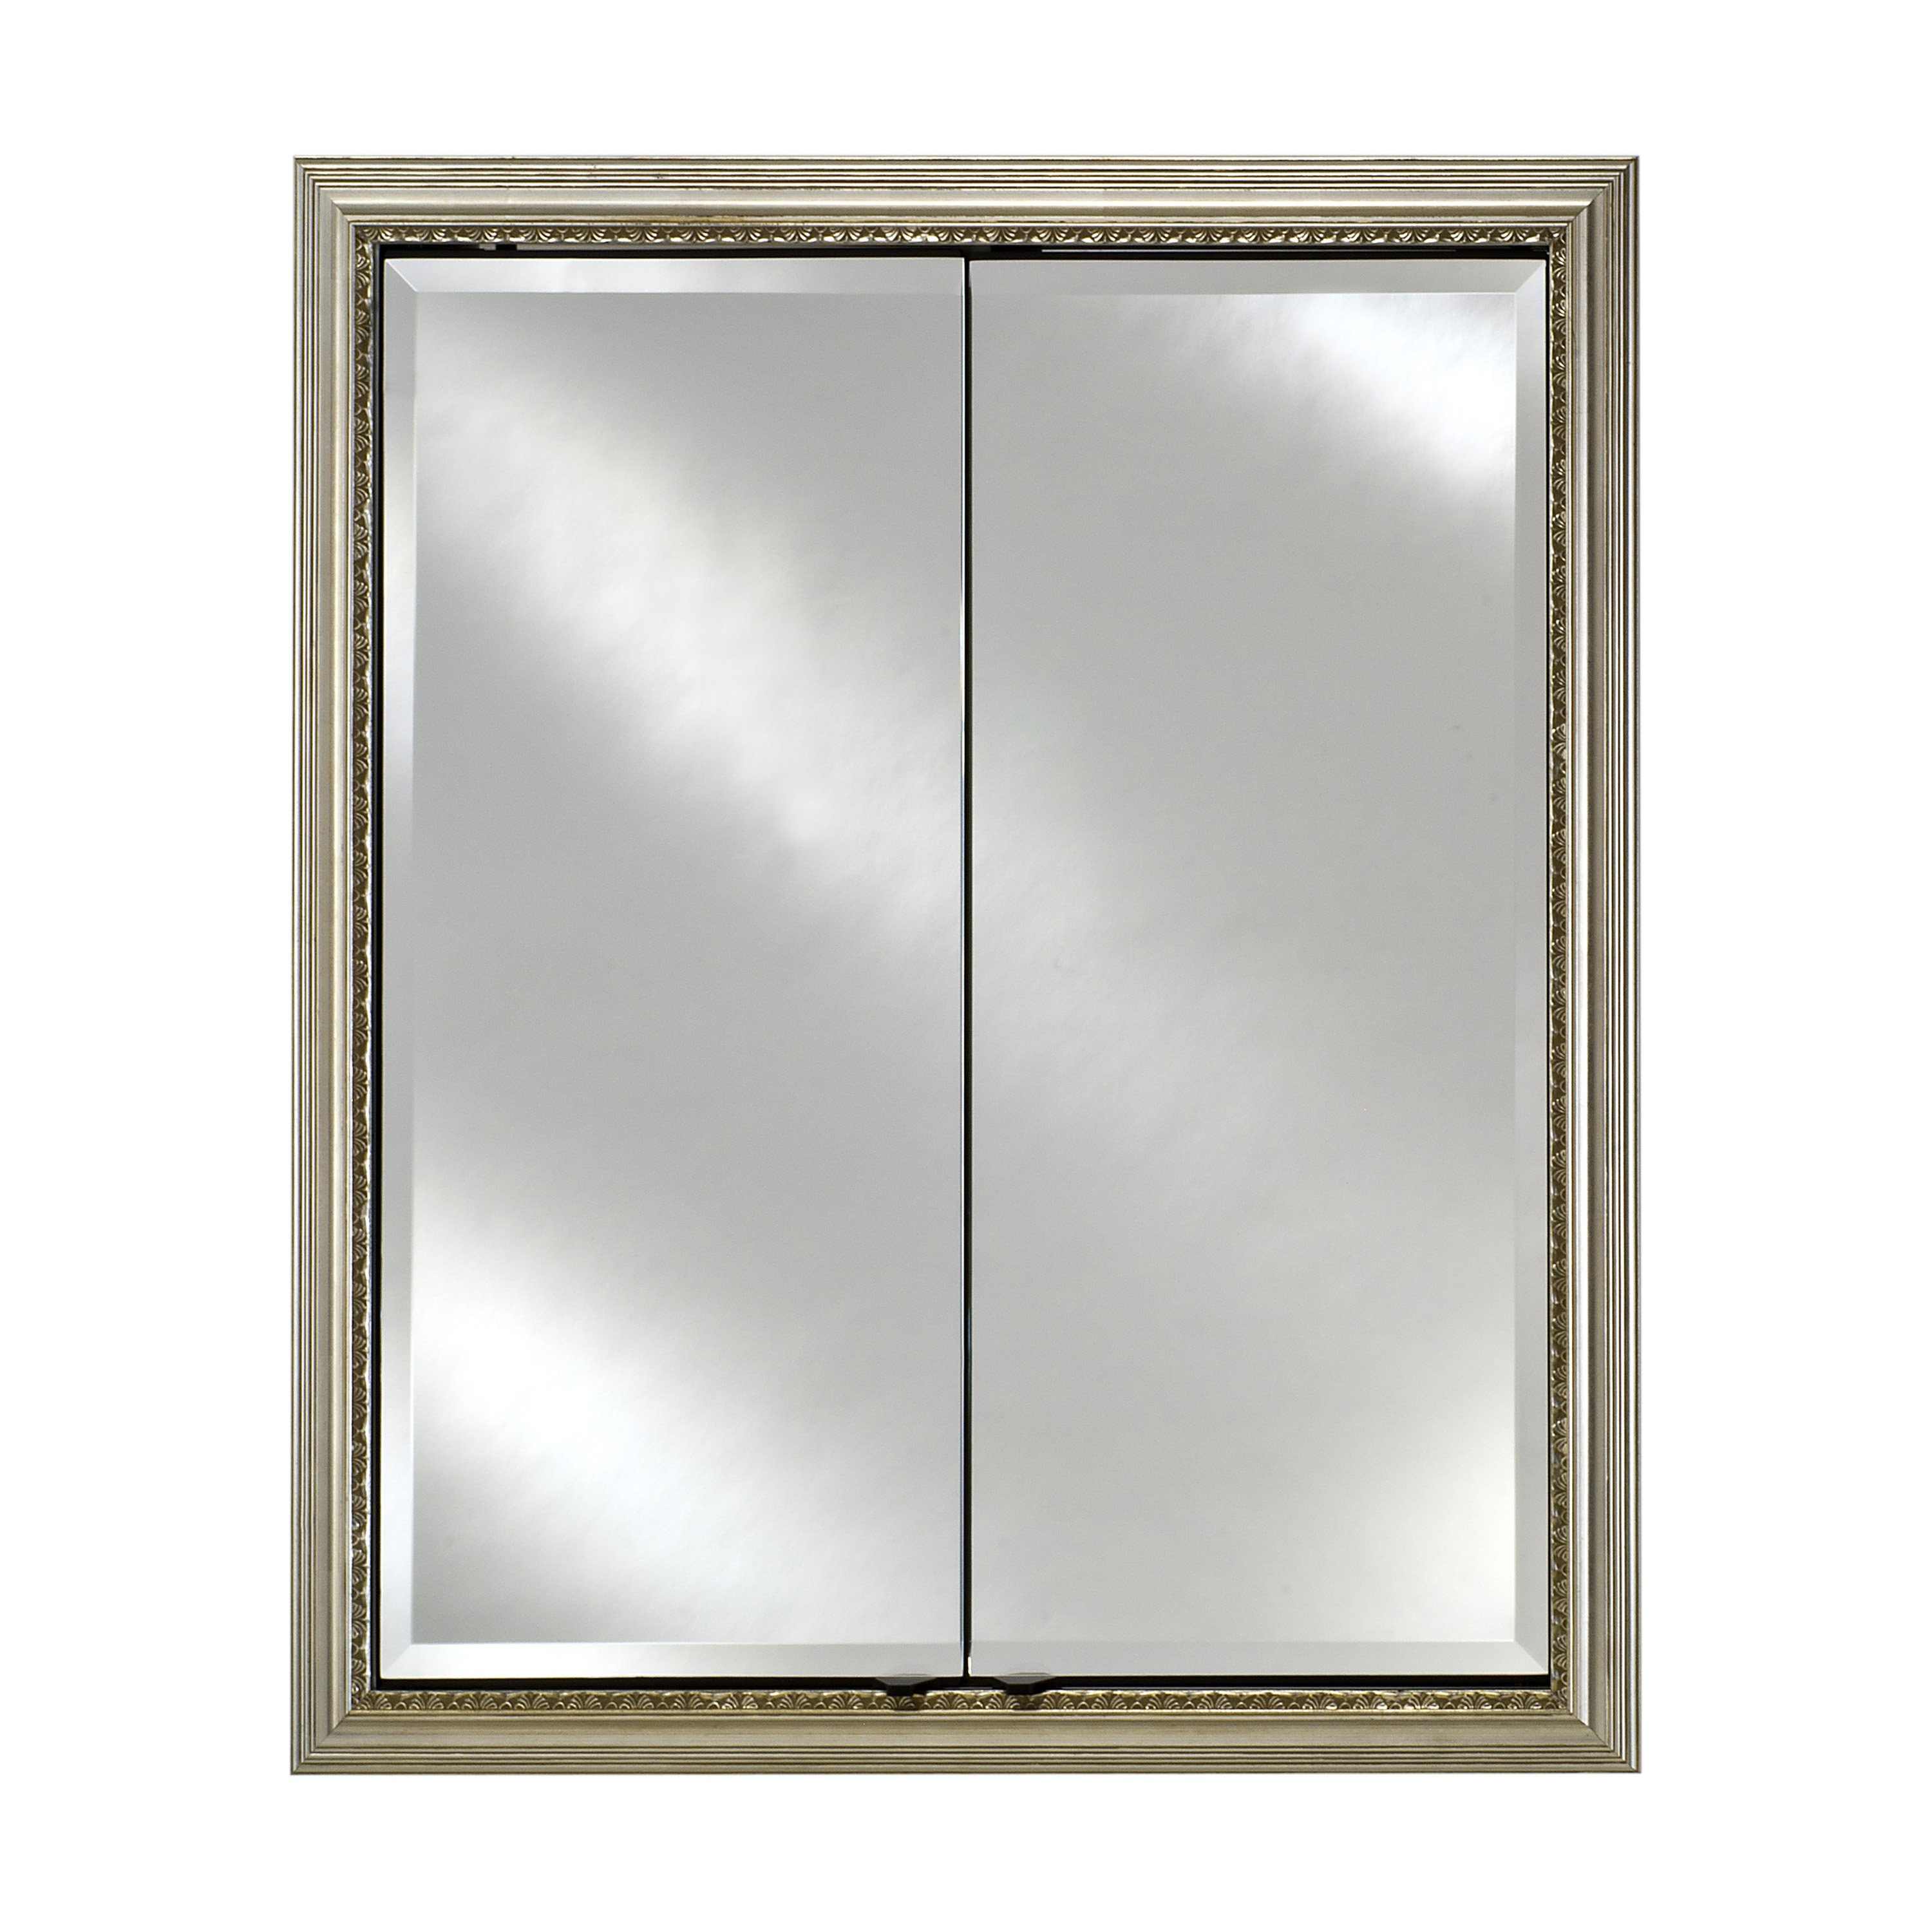 Afina Signature Collection Double Door 31W x 36H in. Recessed Medicine Cabinet